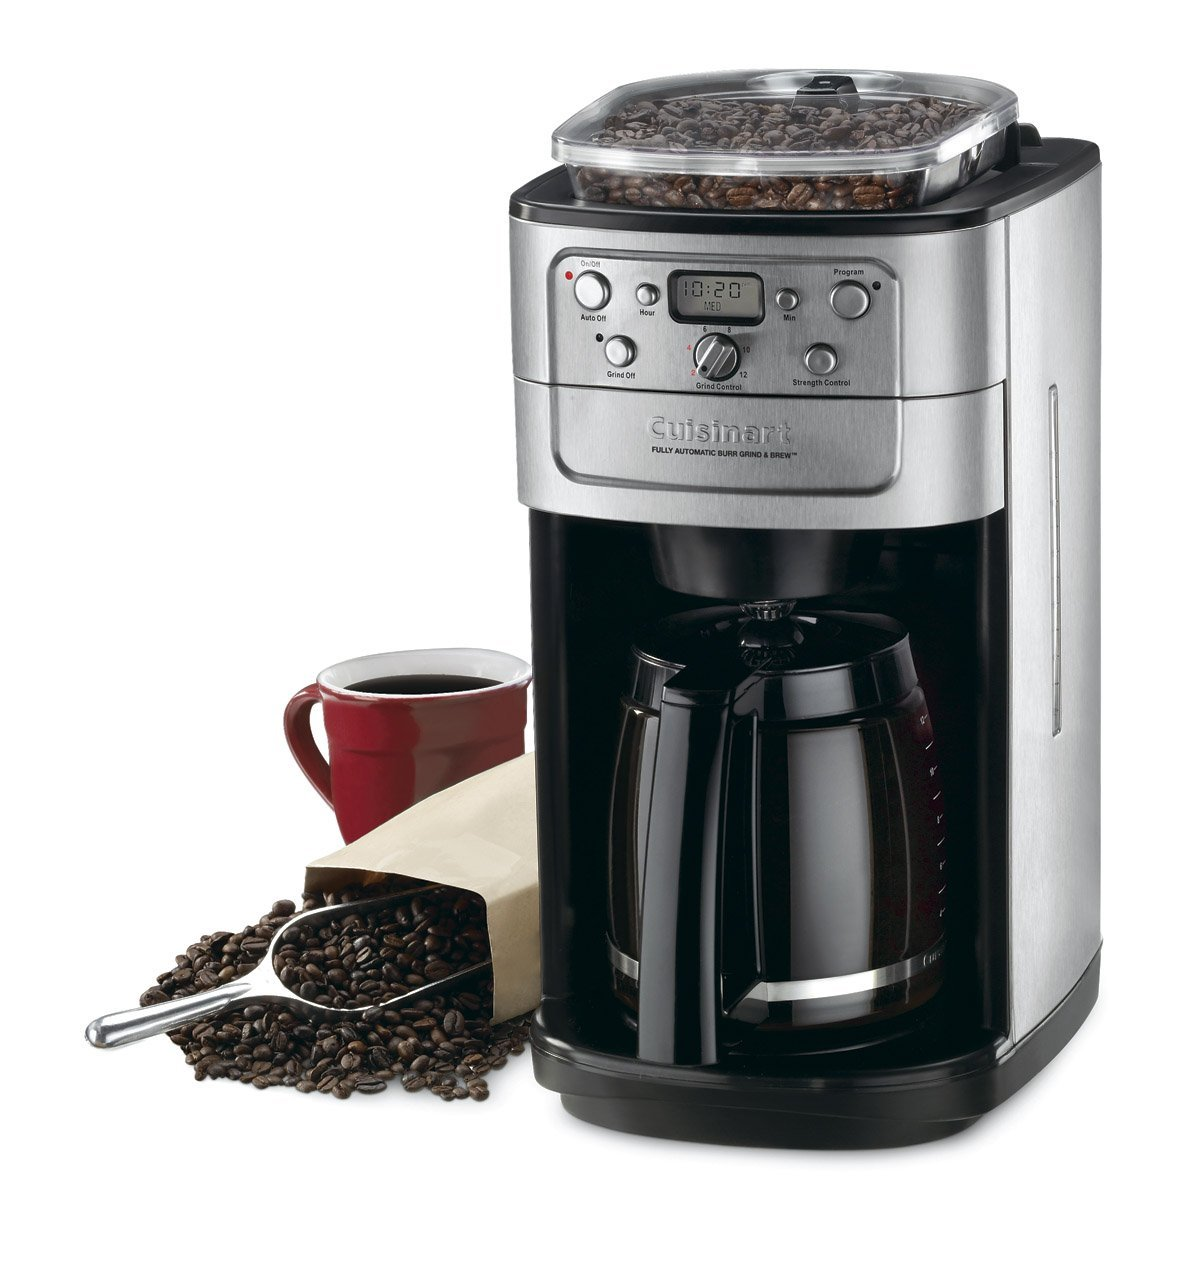 Est Coffee Maker With Grinder